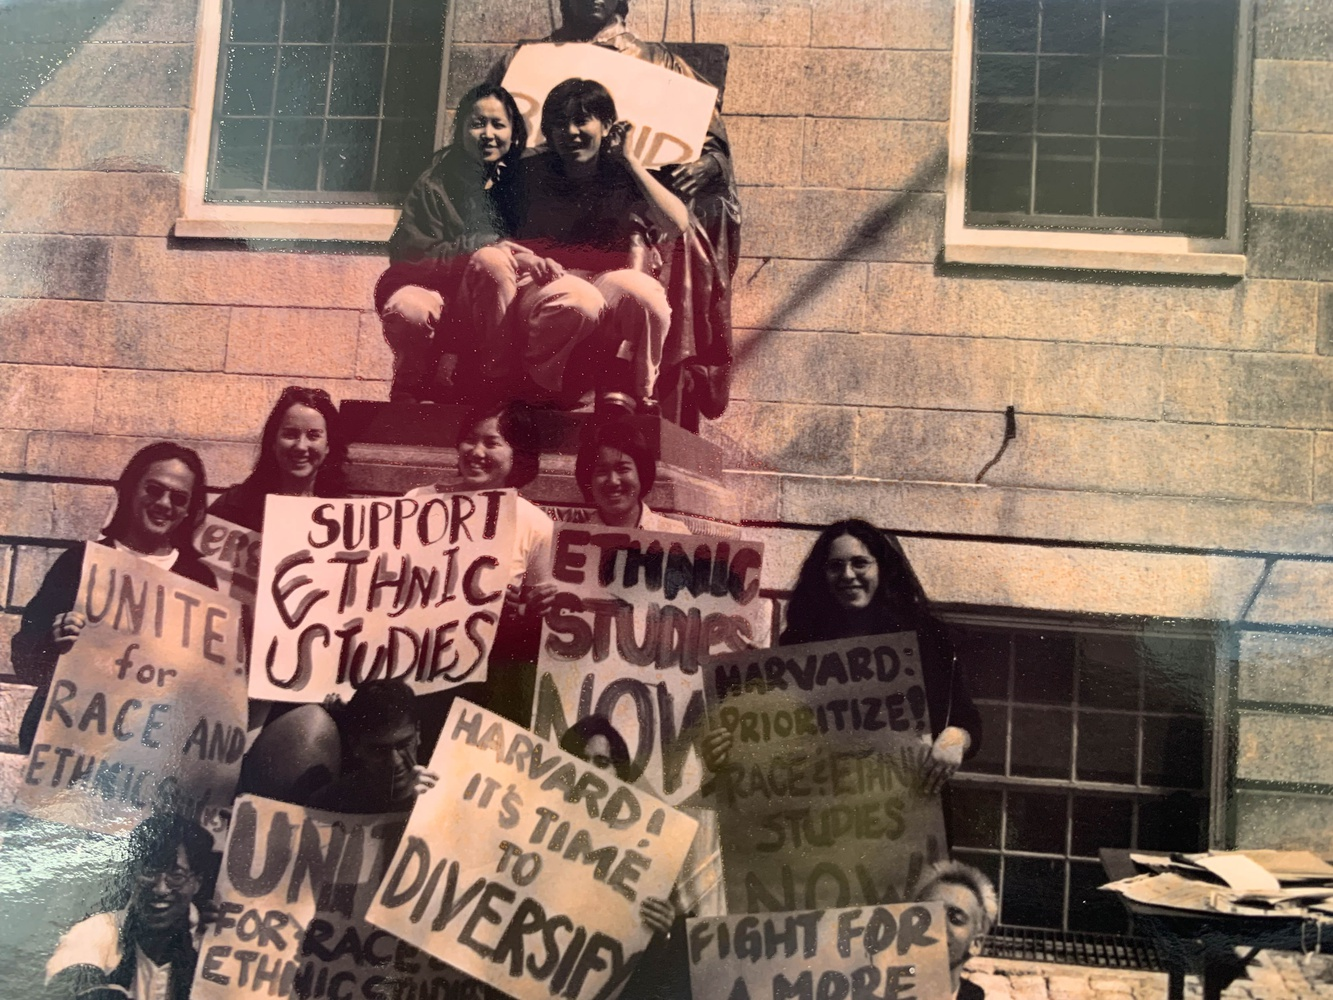 Students staged sit-ins and protests during the 1993-1994 academic year to demonstrate support for creating an ethnic studies department.